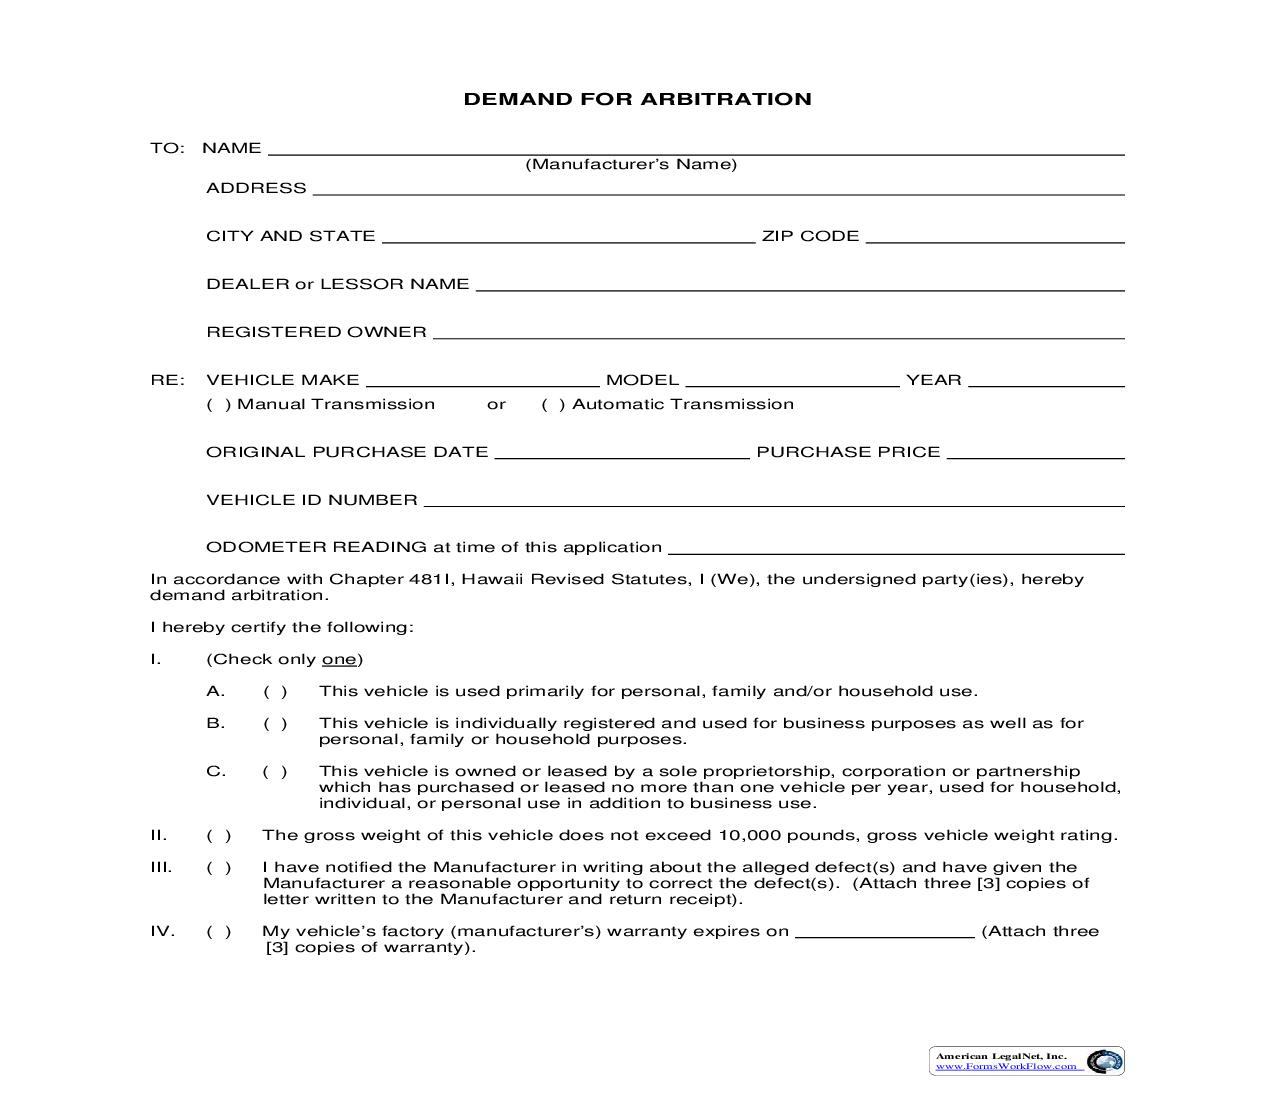 Demand For Arbitration (Hawaii) | Pdf Fpdf Doc Docx | Legal Forms